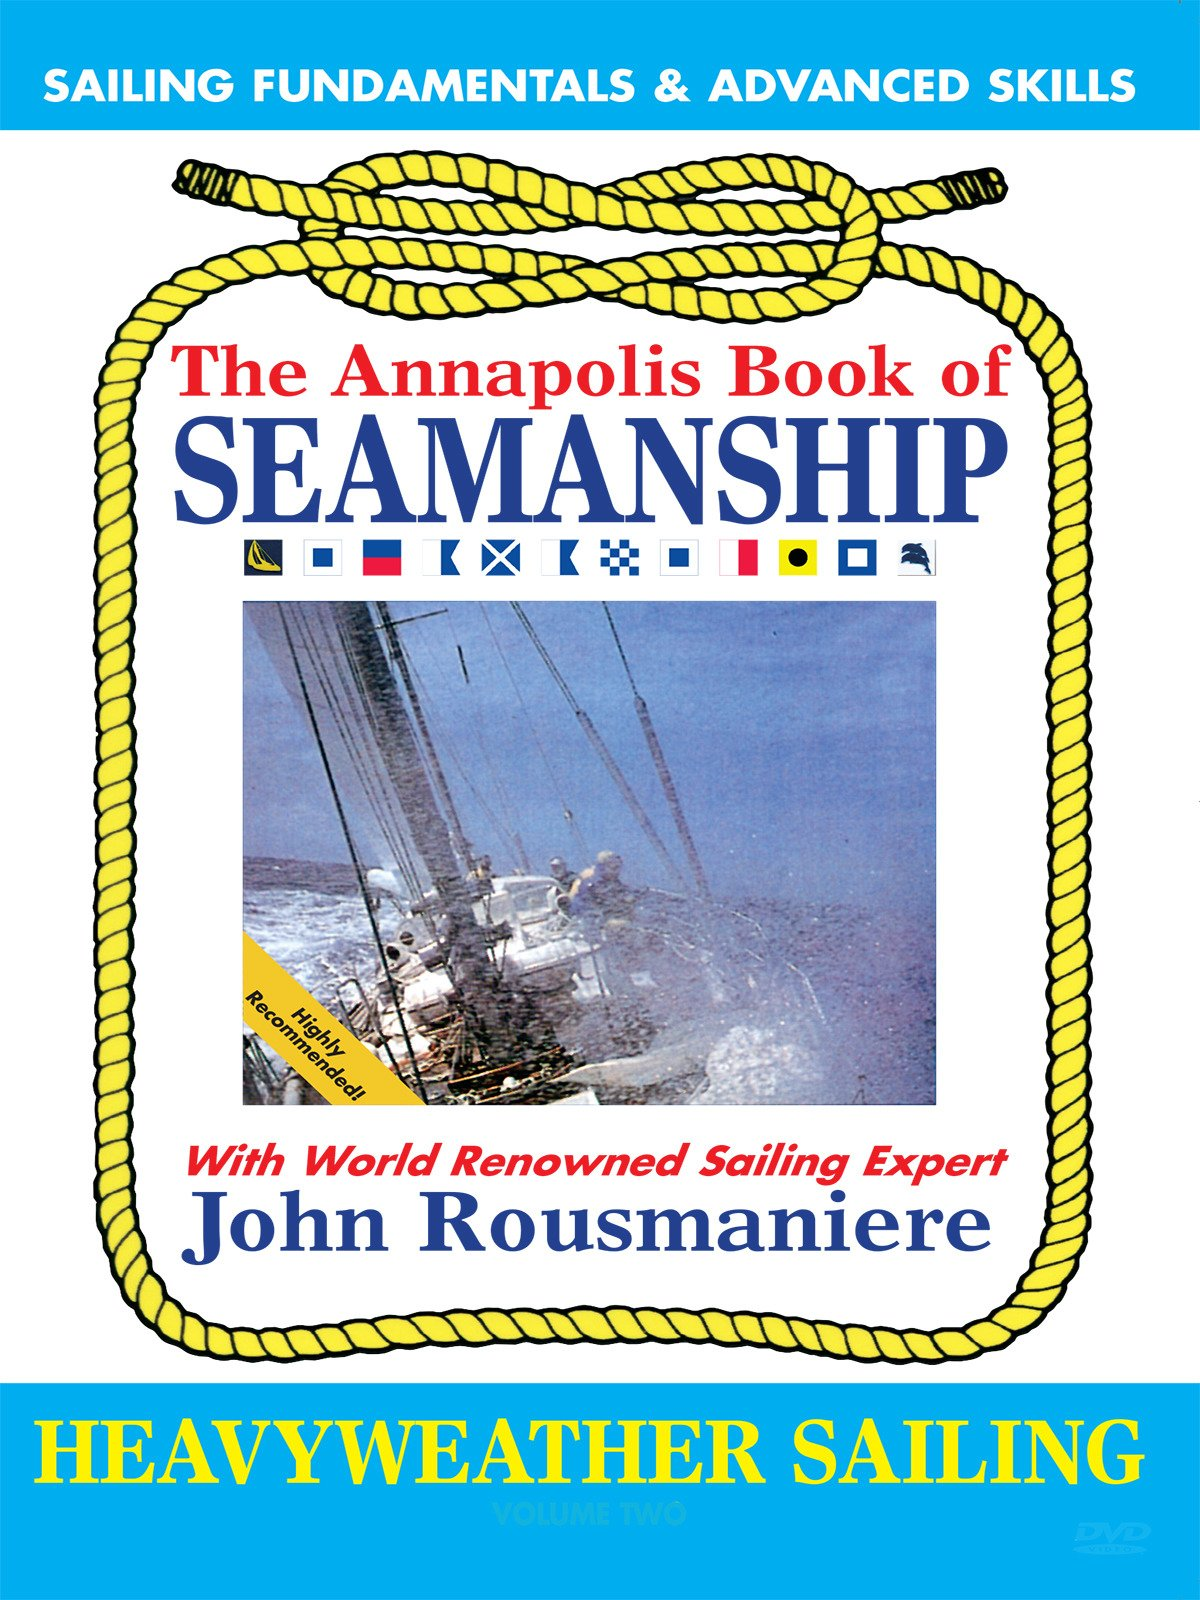 The Annapolis Book of Seamanship Heavy Weather Sailing with John Rousmaniere